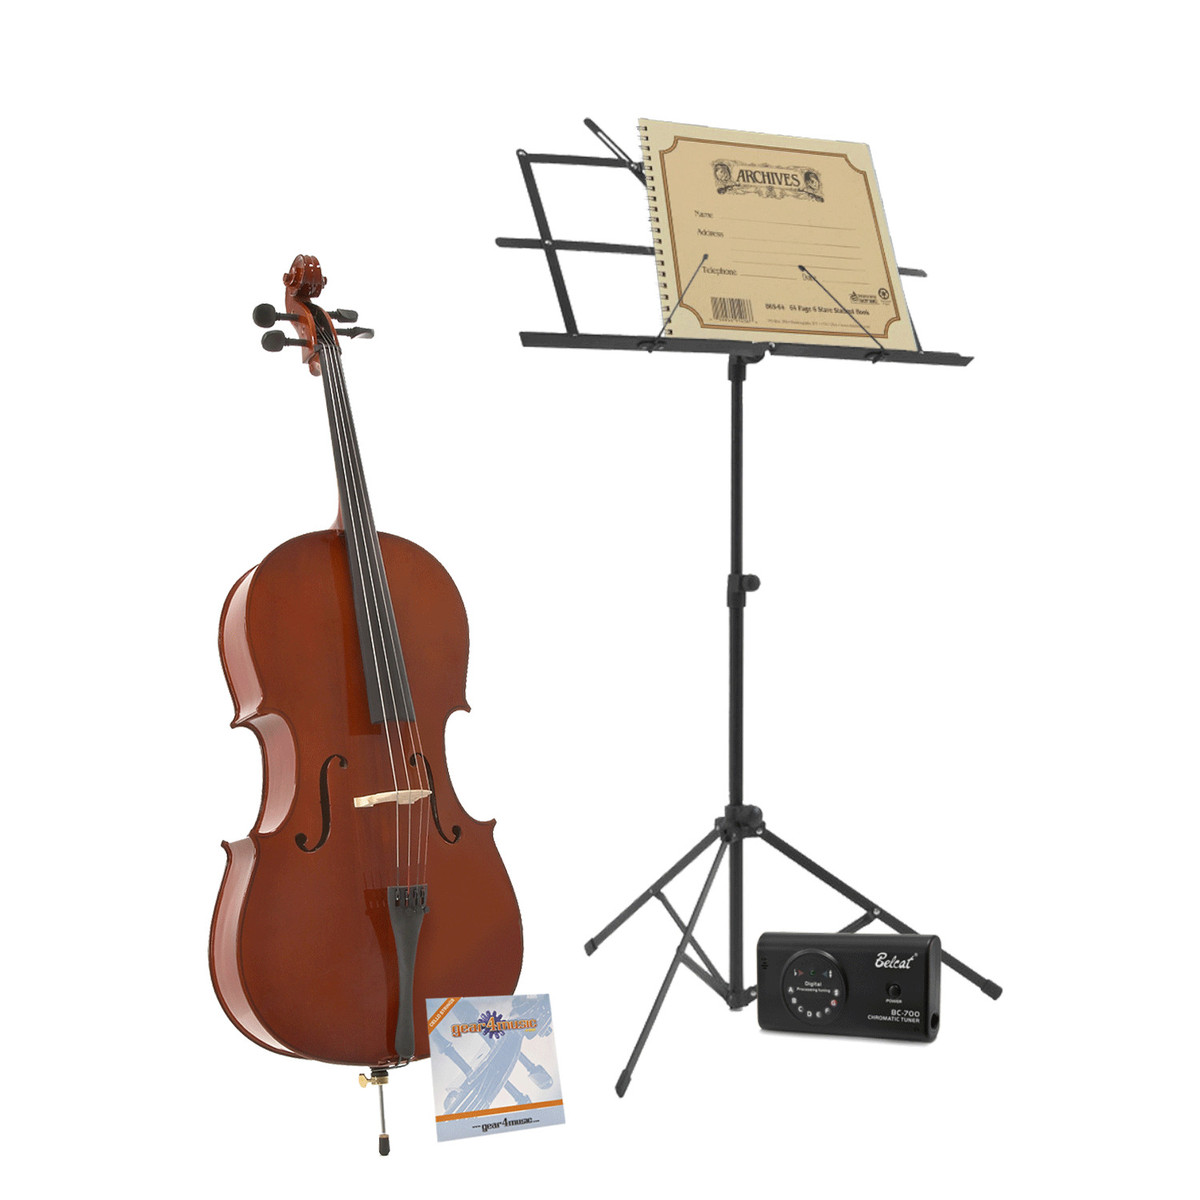 1/2 Student Cello Back to School Pack by Gear4music